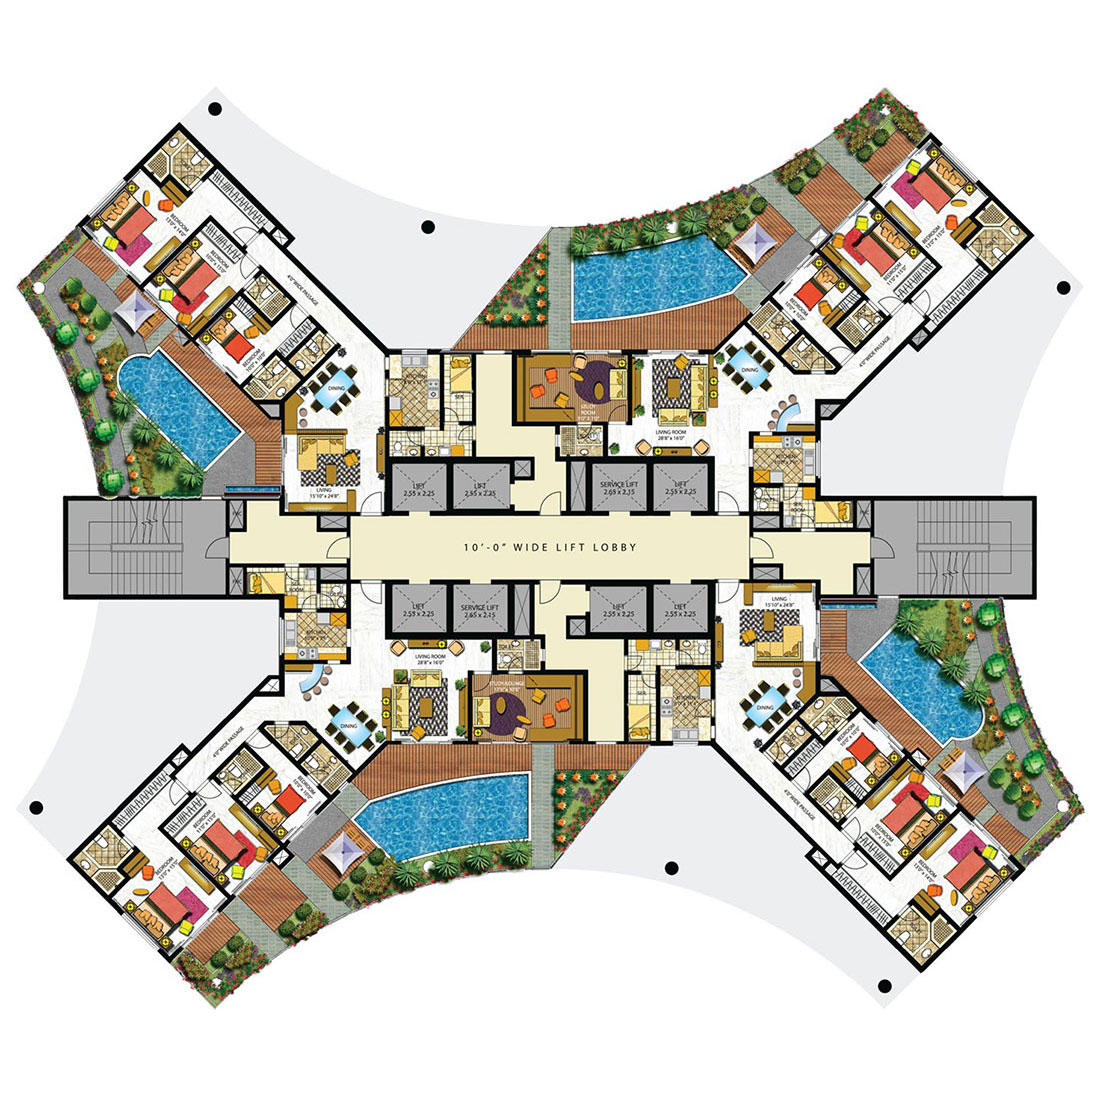 94 modern hotel floor plans pdf winning floor plans for for Small hotel plans and designs